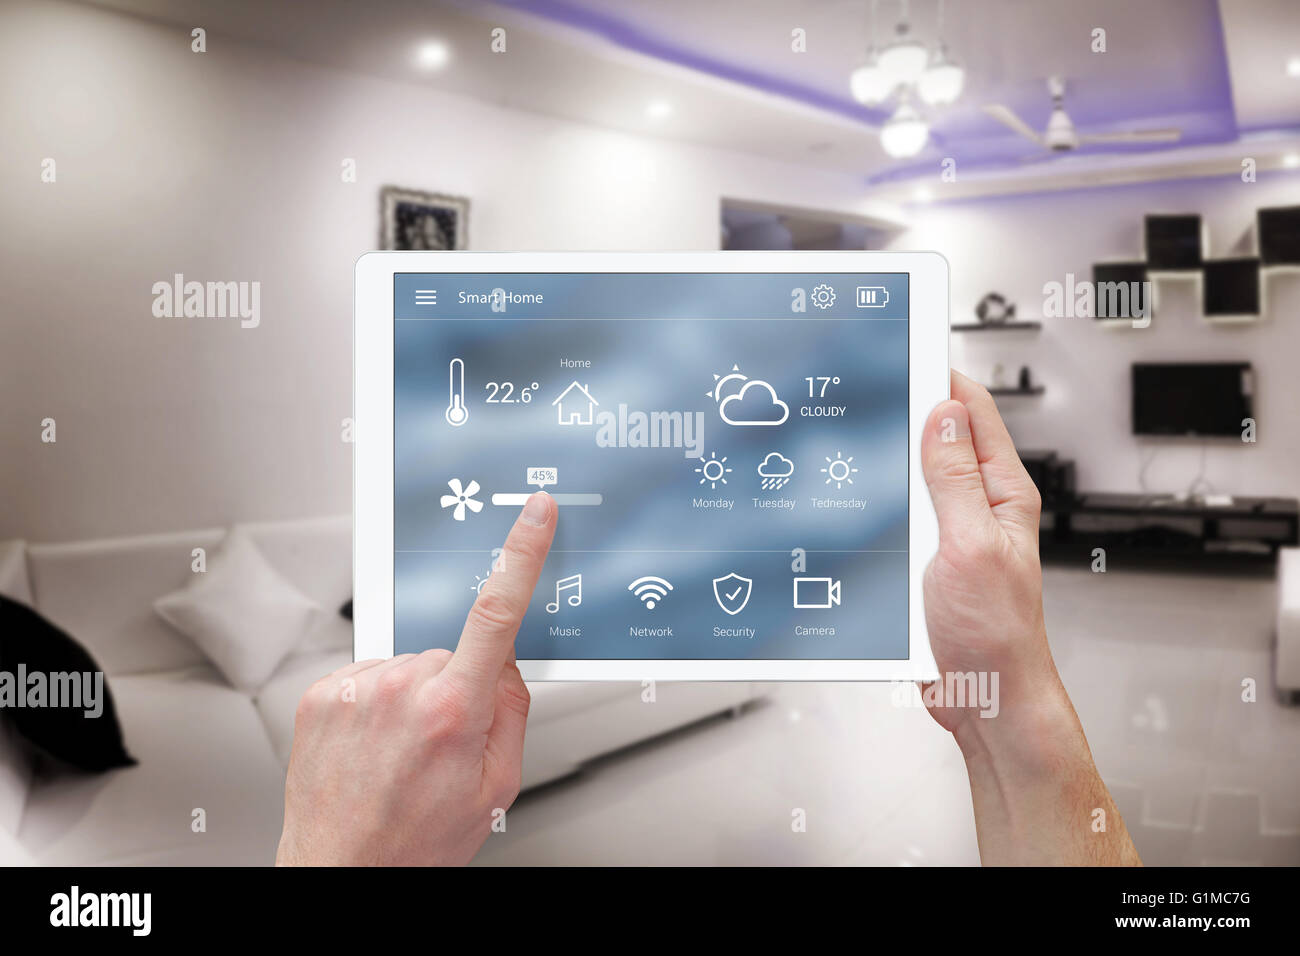 Smart Home Fernbedienung Smart Home Fernbedienung